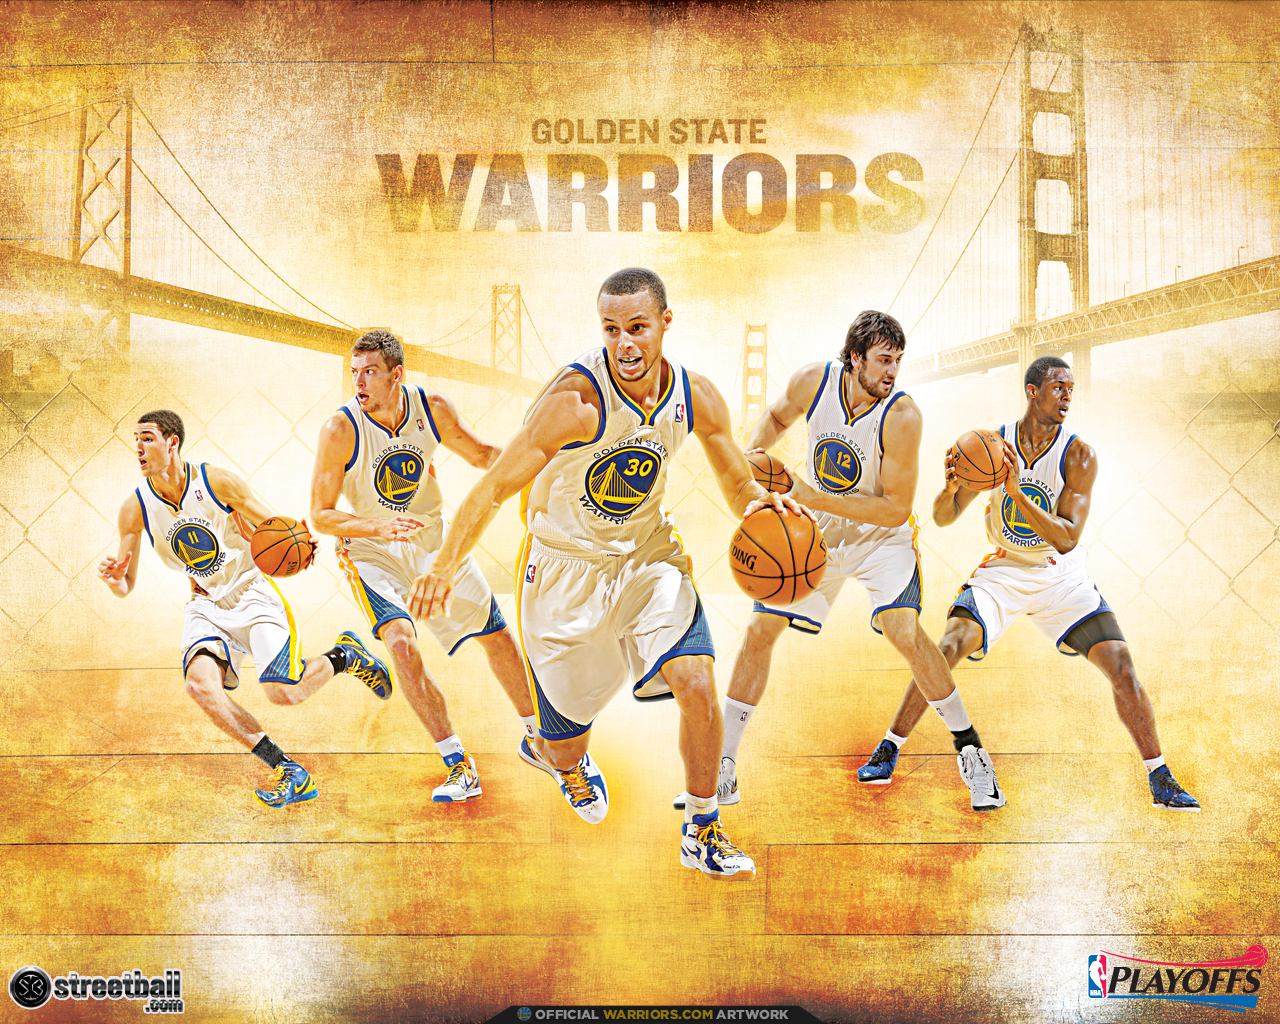 NBA Playoffs Golden State Warriors Wallpapers Hd cute Wallpapers 1280x1024